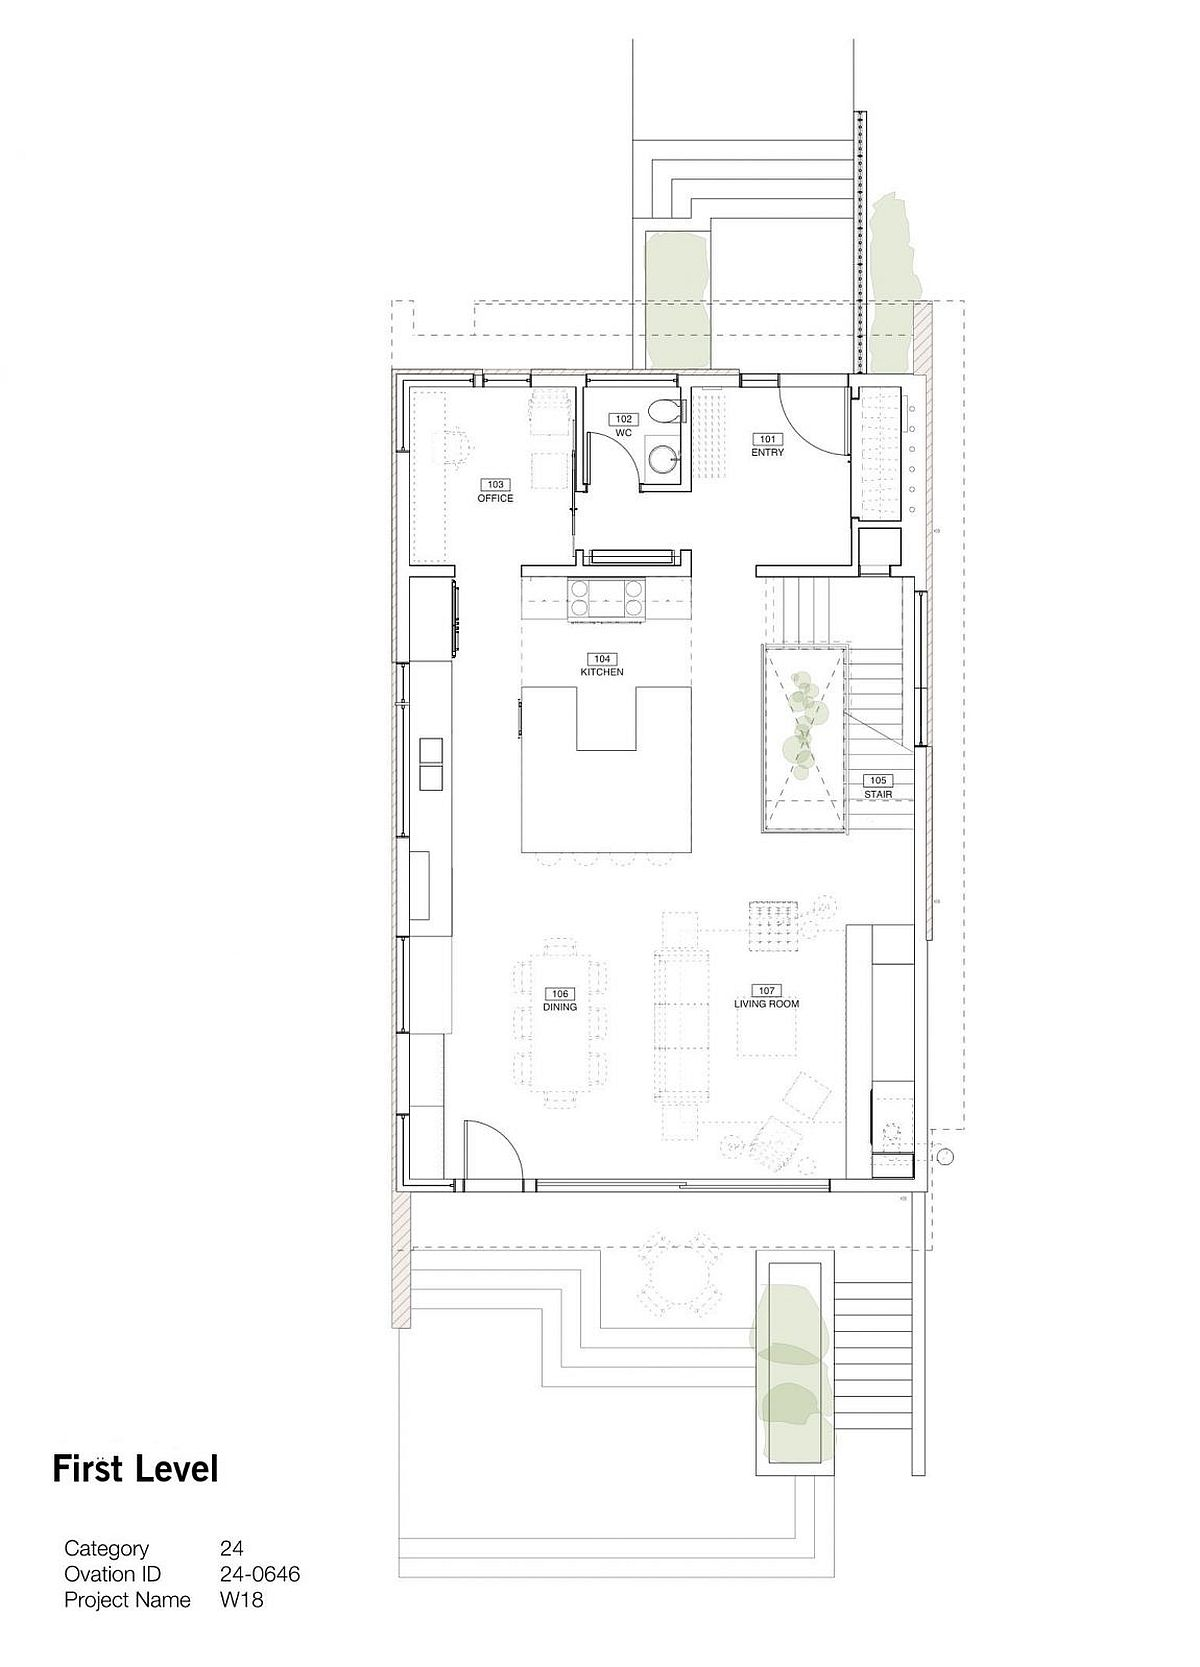 FIrst level floor plan with the living area, kitchen and dining